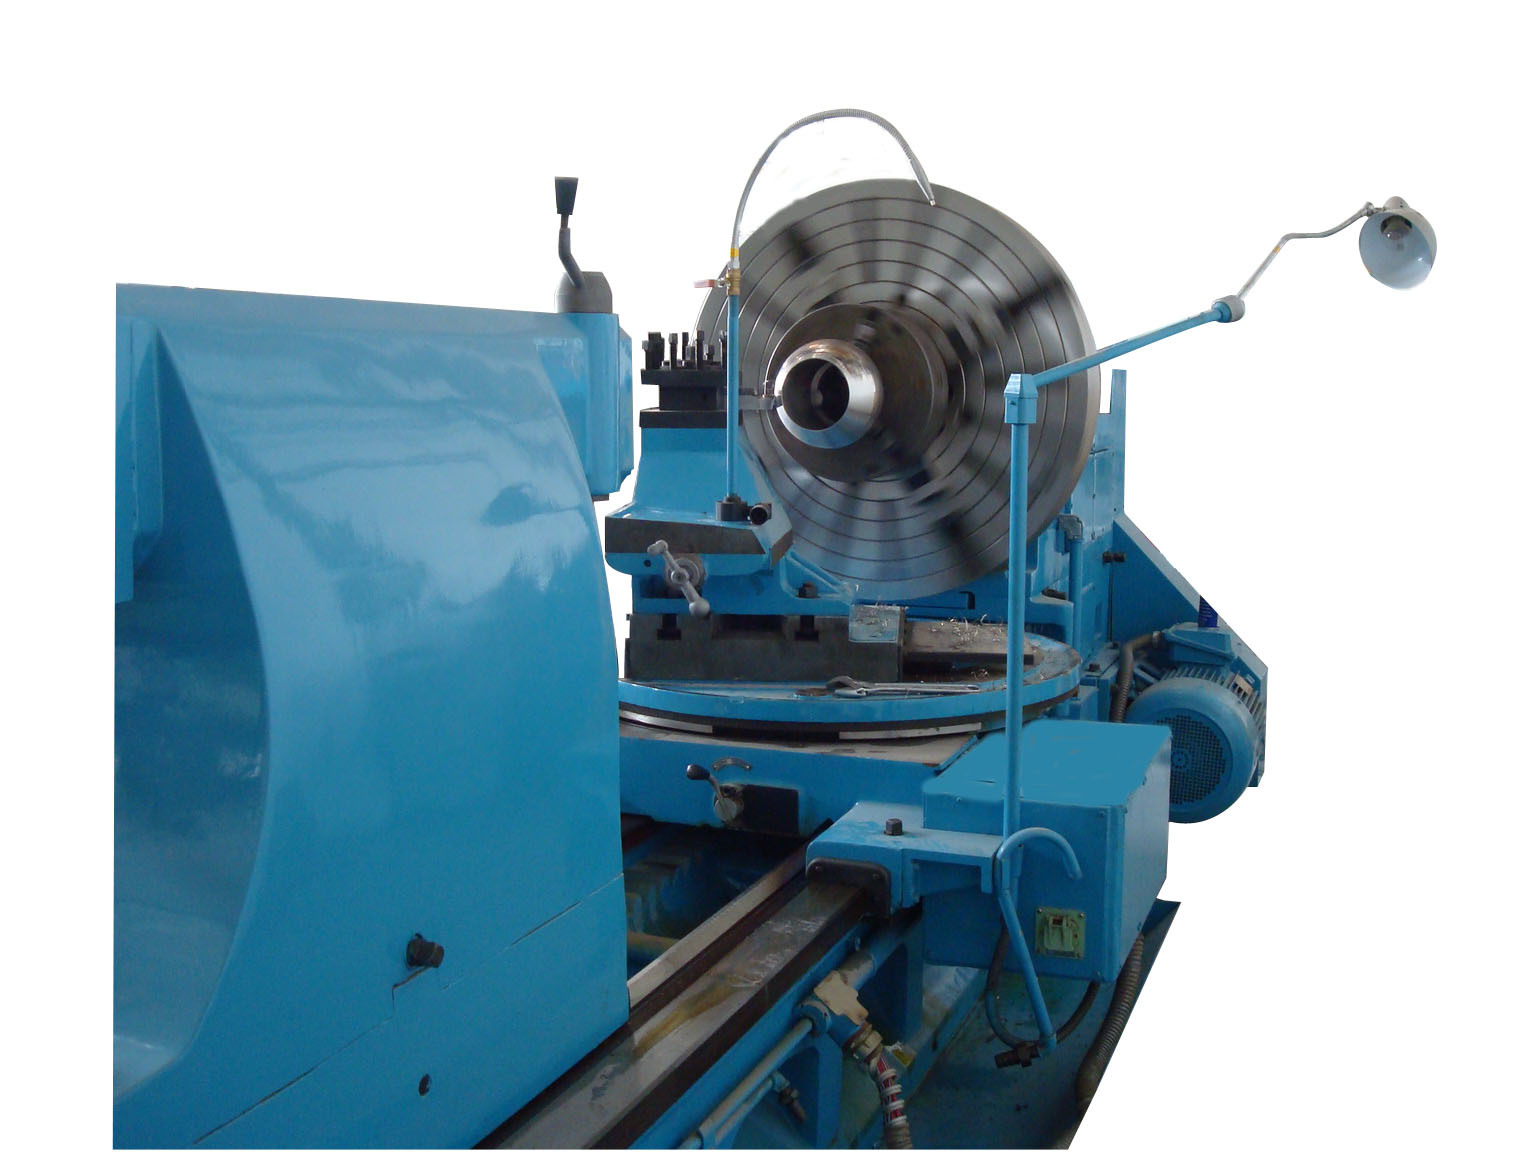 Spindle Hole 100mm Gold Supplier Spherical Lathe For Ball Surface C65160